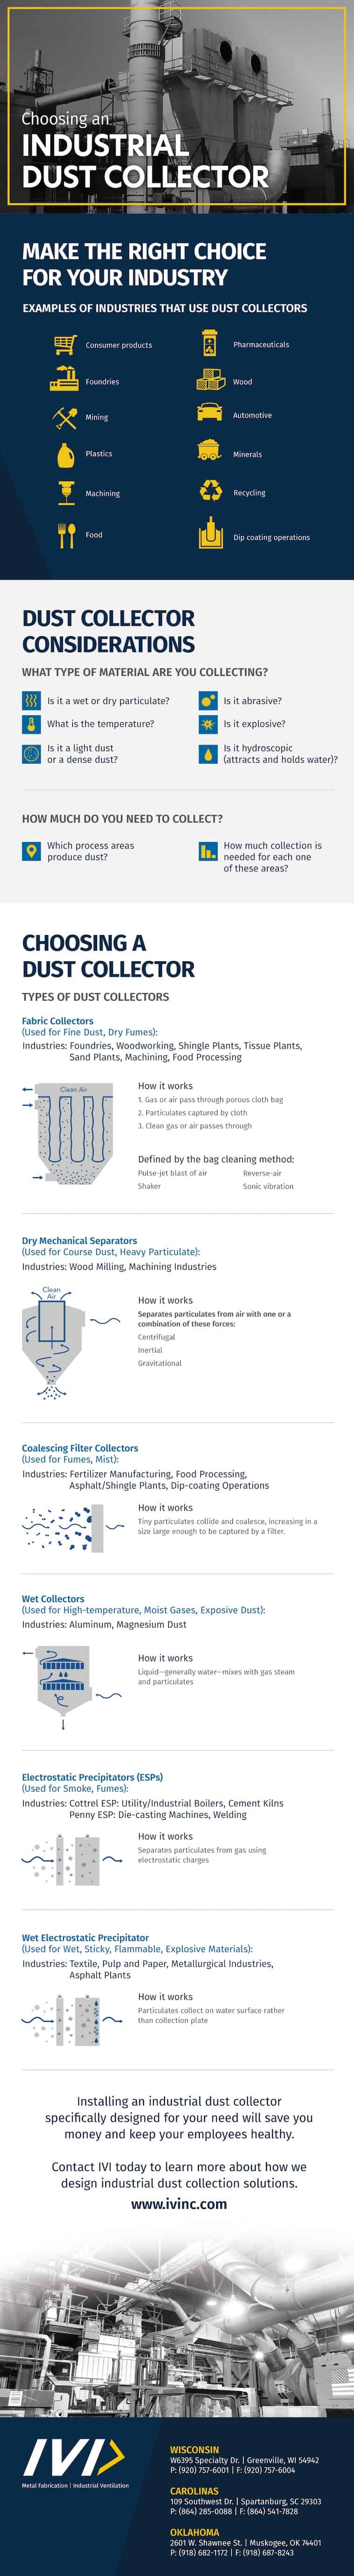 Infographic about choosing an industrial dust collector